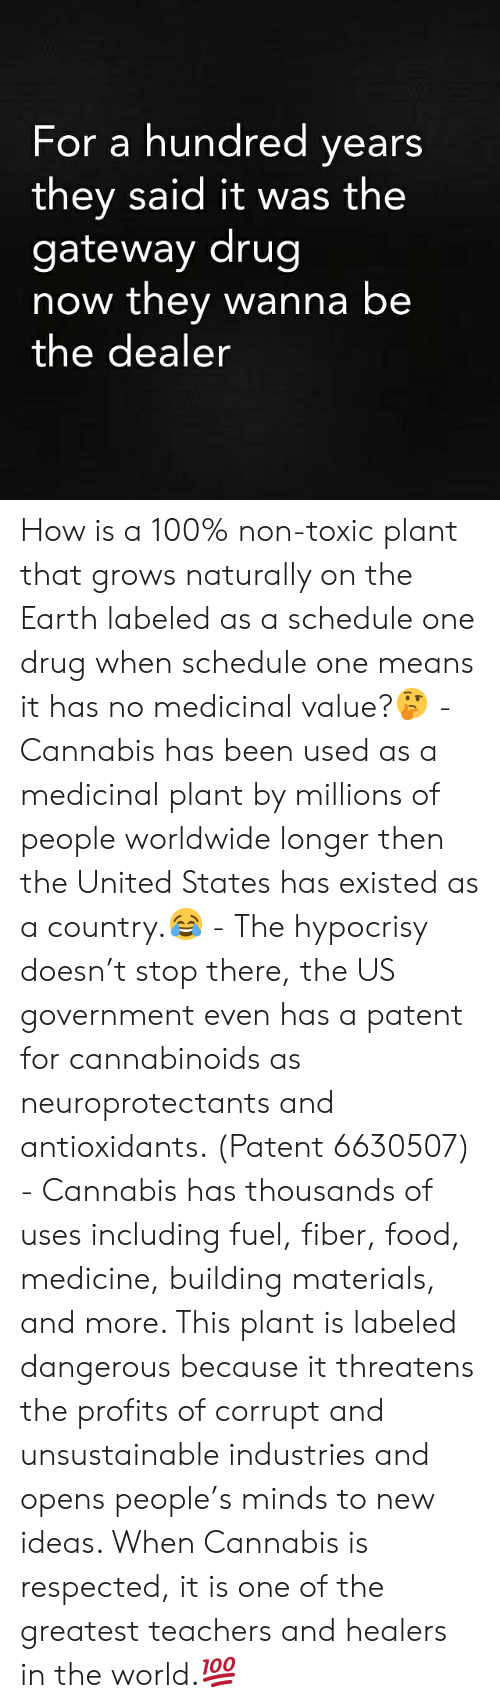 Hypocrisy: For a hundred years  they said it was the  gateway drug  now they wanna be  the dealer How is a 100% non-toxic plant that grows naturally on the Earth labeled as a schedule one drug when schedule one means it has no medicinal value?🤔 - Cannabis has been used as a medicinal plant by millions of people worldwide longer then the United States has existed as a country.😂 - The hypocrisy doesn't stop there, the US government even has a patent for cannabinoids as neuroprotectants and antioxidants. (Patent 6630507) - Cannabis has thousands of uses including fuel, fiber, food, medicine, building materials, and more. This plant is labeled dangerous because it threatens the profits of corrupt and unsustainable industries and opens people's minds to new ideas. When Cannabis is respected, it is one of the greatest teachers and healers in the world.💯